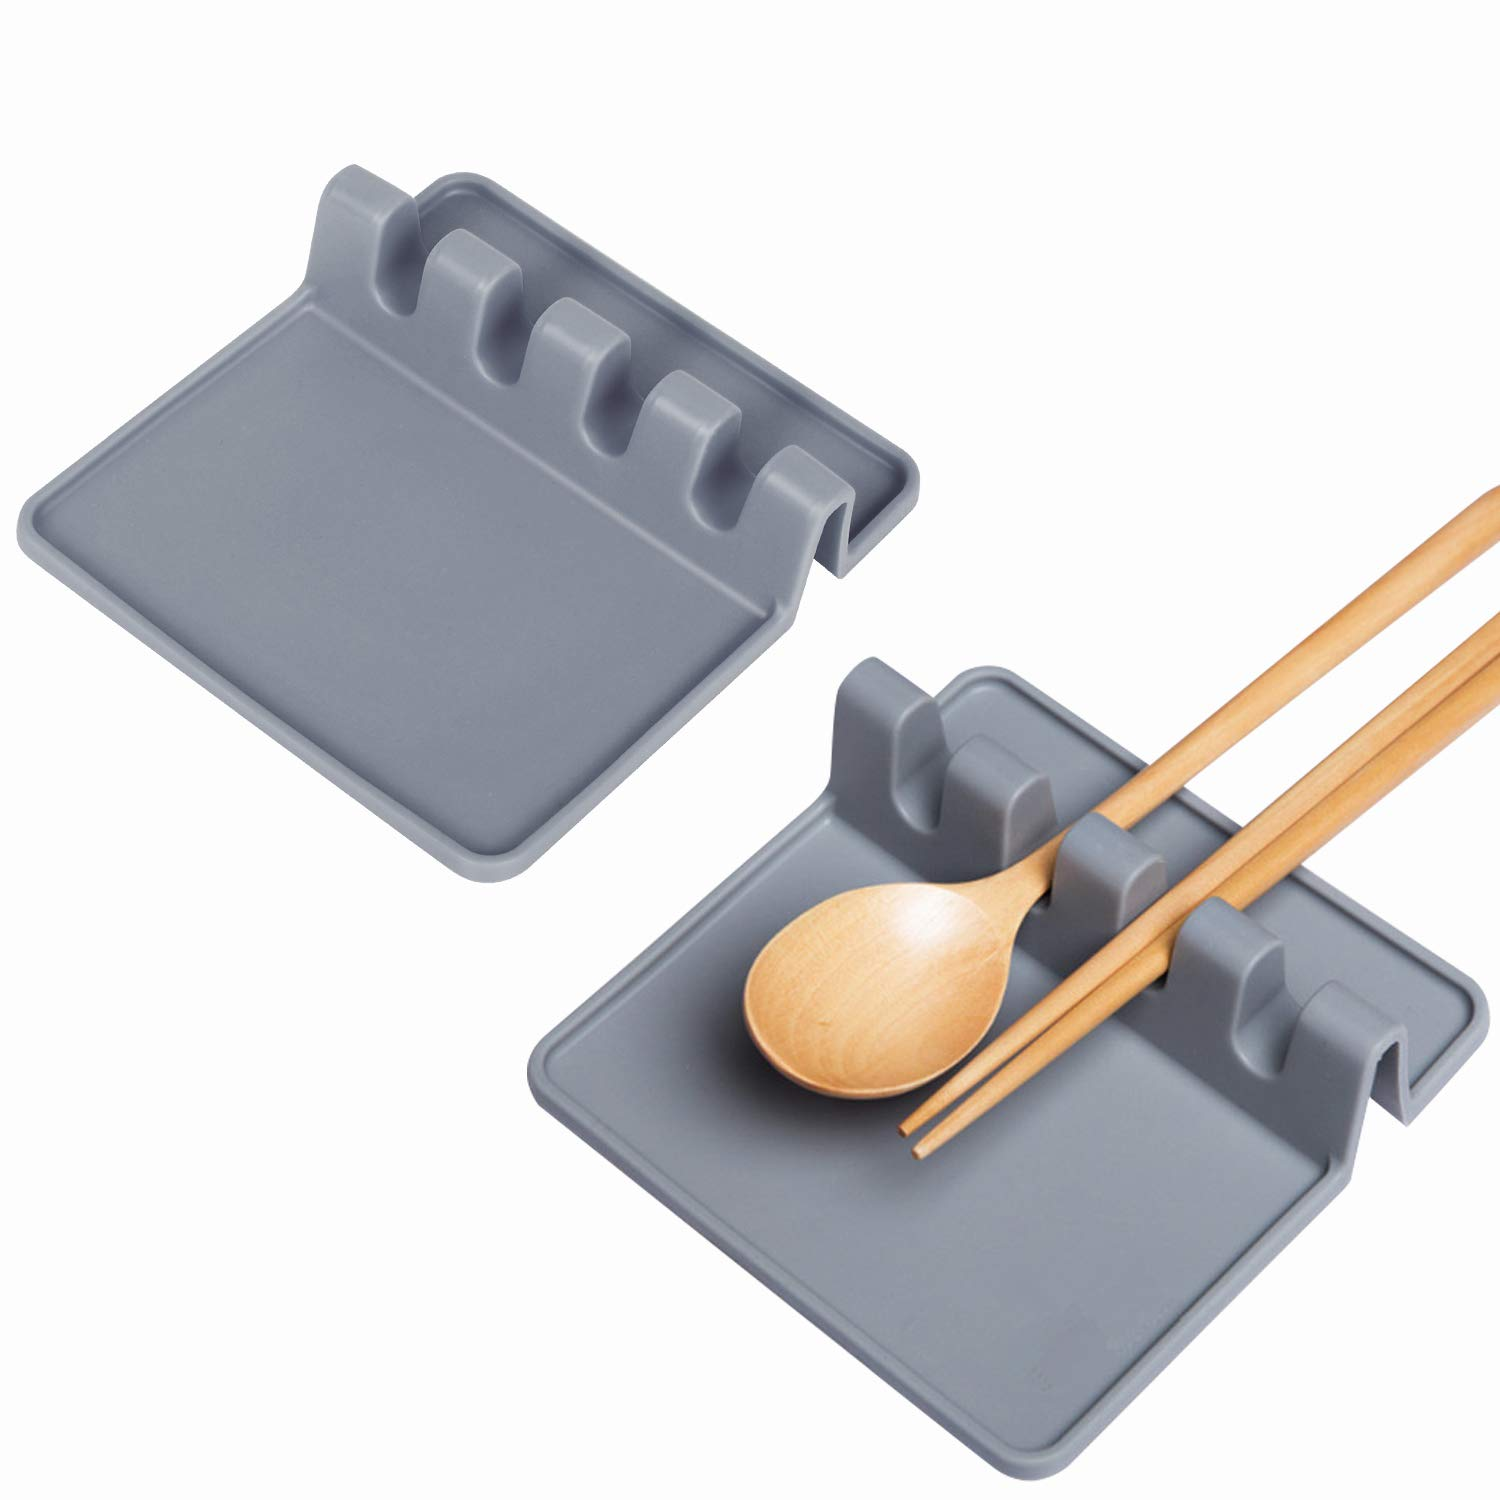 Luxamary Christmas Spoon Rest for Stove Top, 2 Pack Silicone Utensils Rest for Kitchen, Coffee Spoon Rest by Luxamary